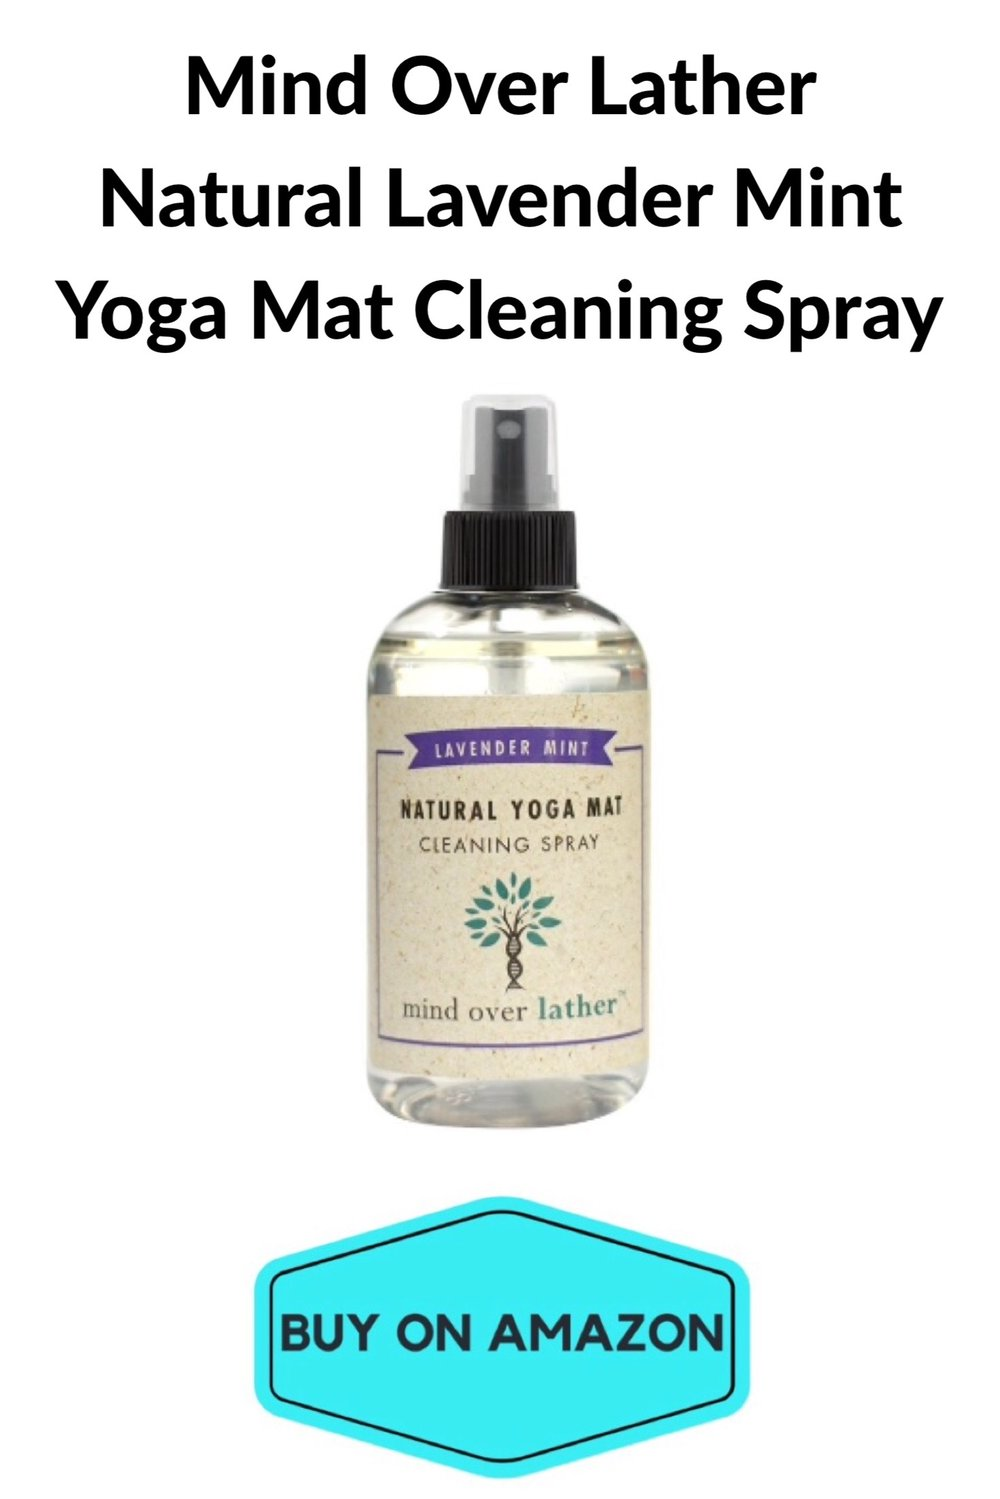 Mind Over Lather Natural Lavender Mint Yoga Mat Cleaning Spray